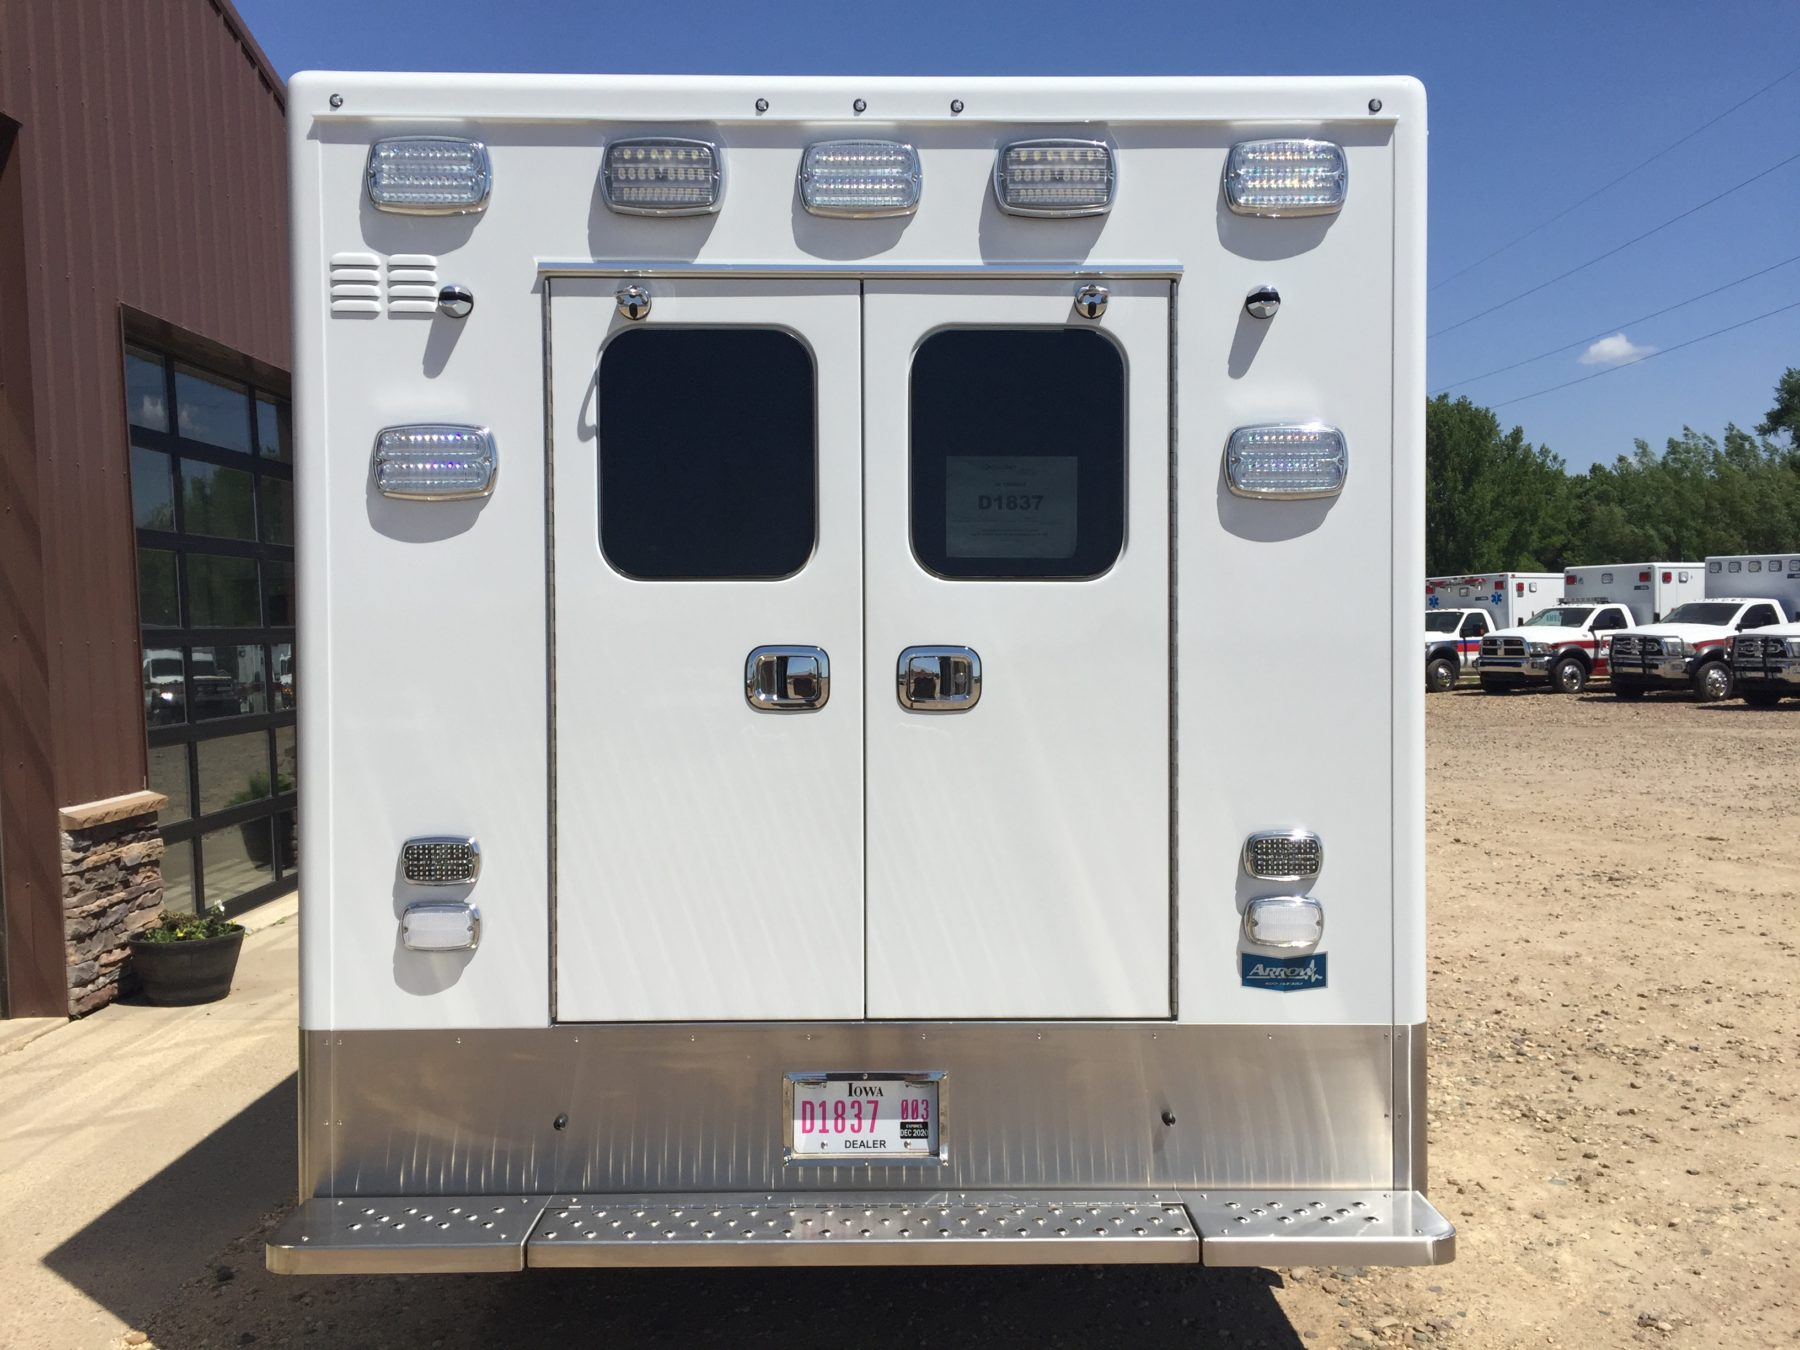 2019 Ford F450 4x4 Heavy Duty Ambulance For Sale – Picture 13